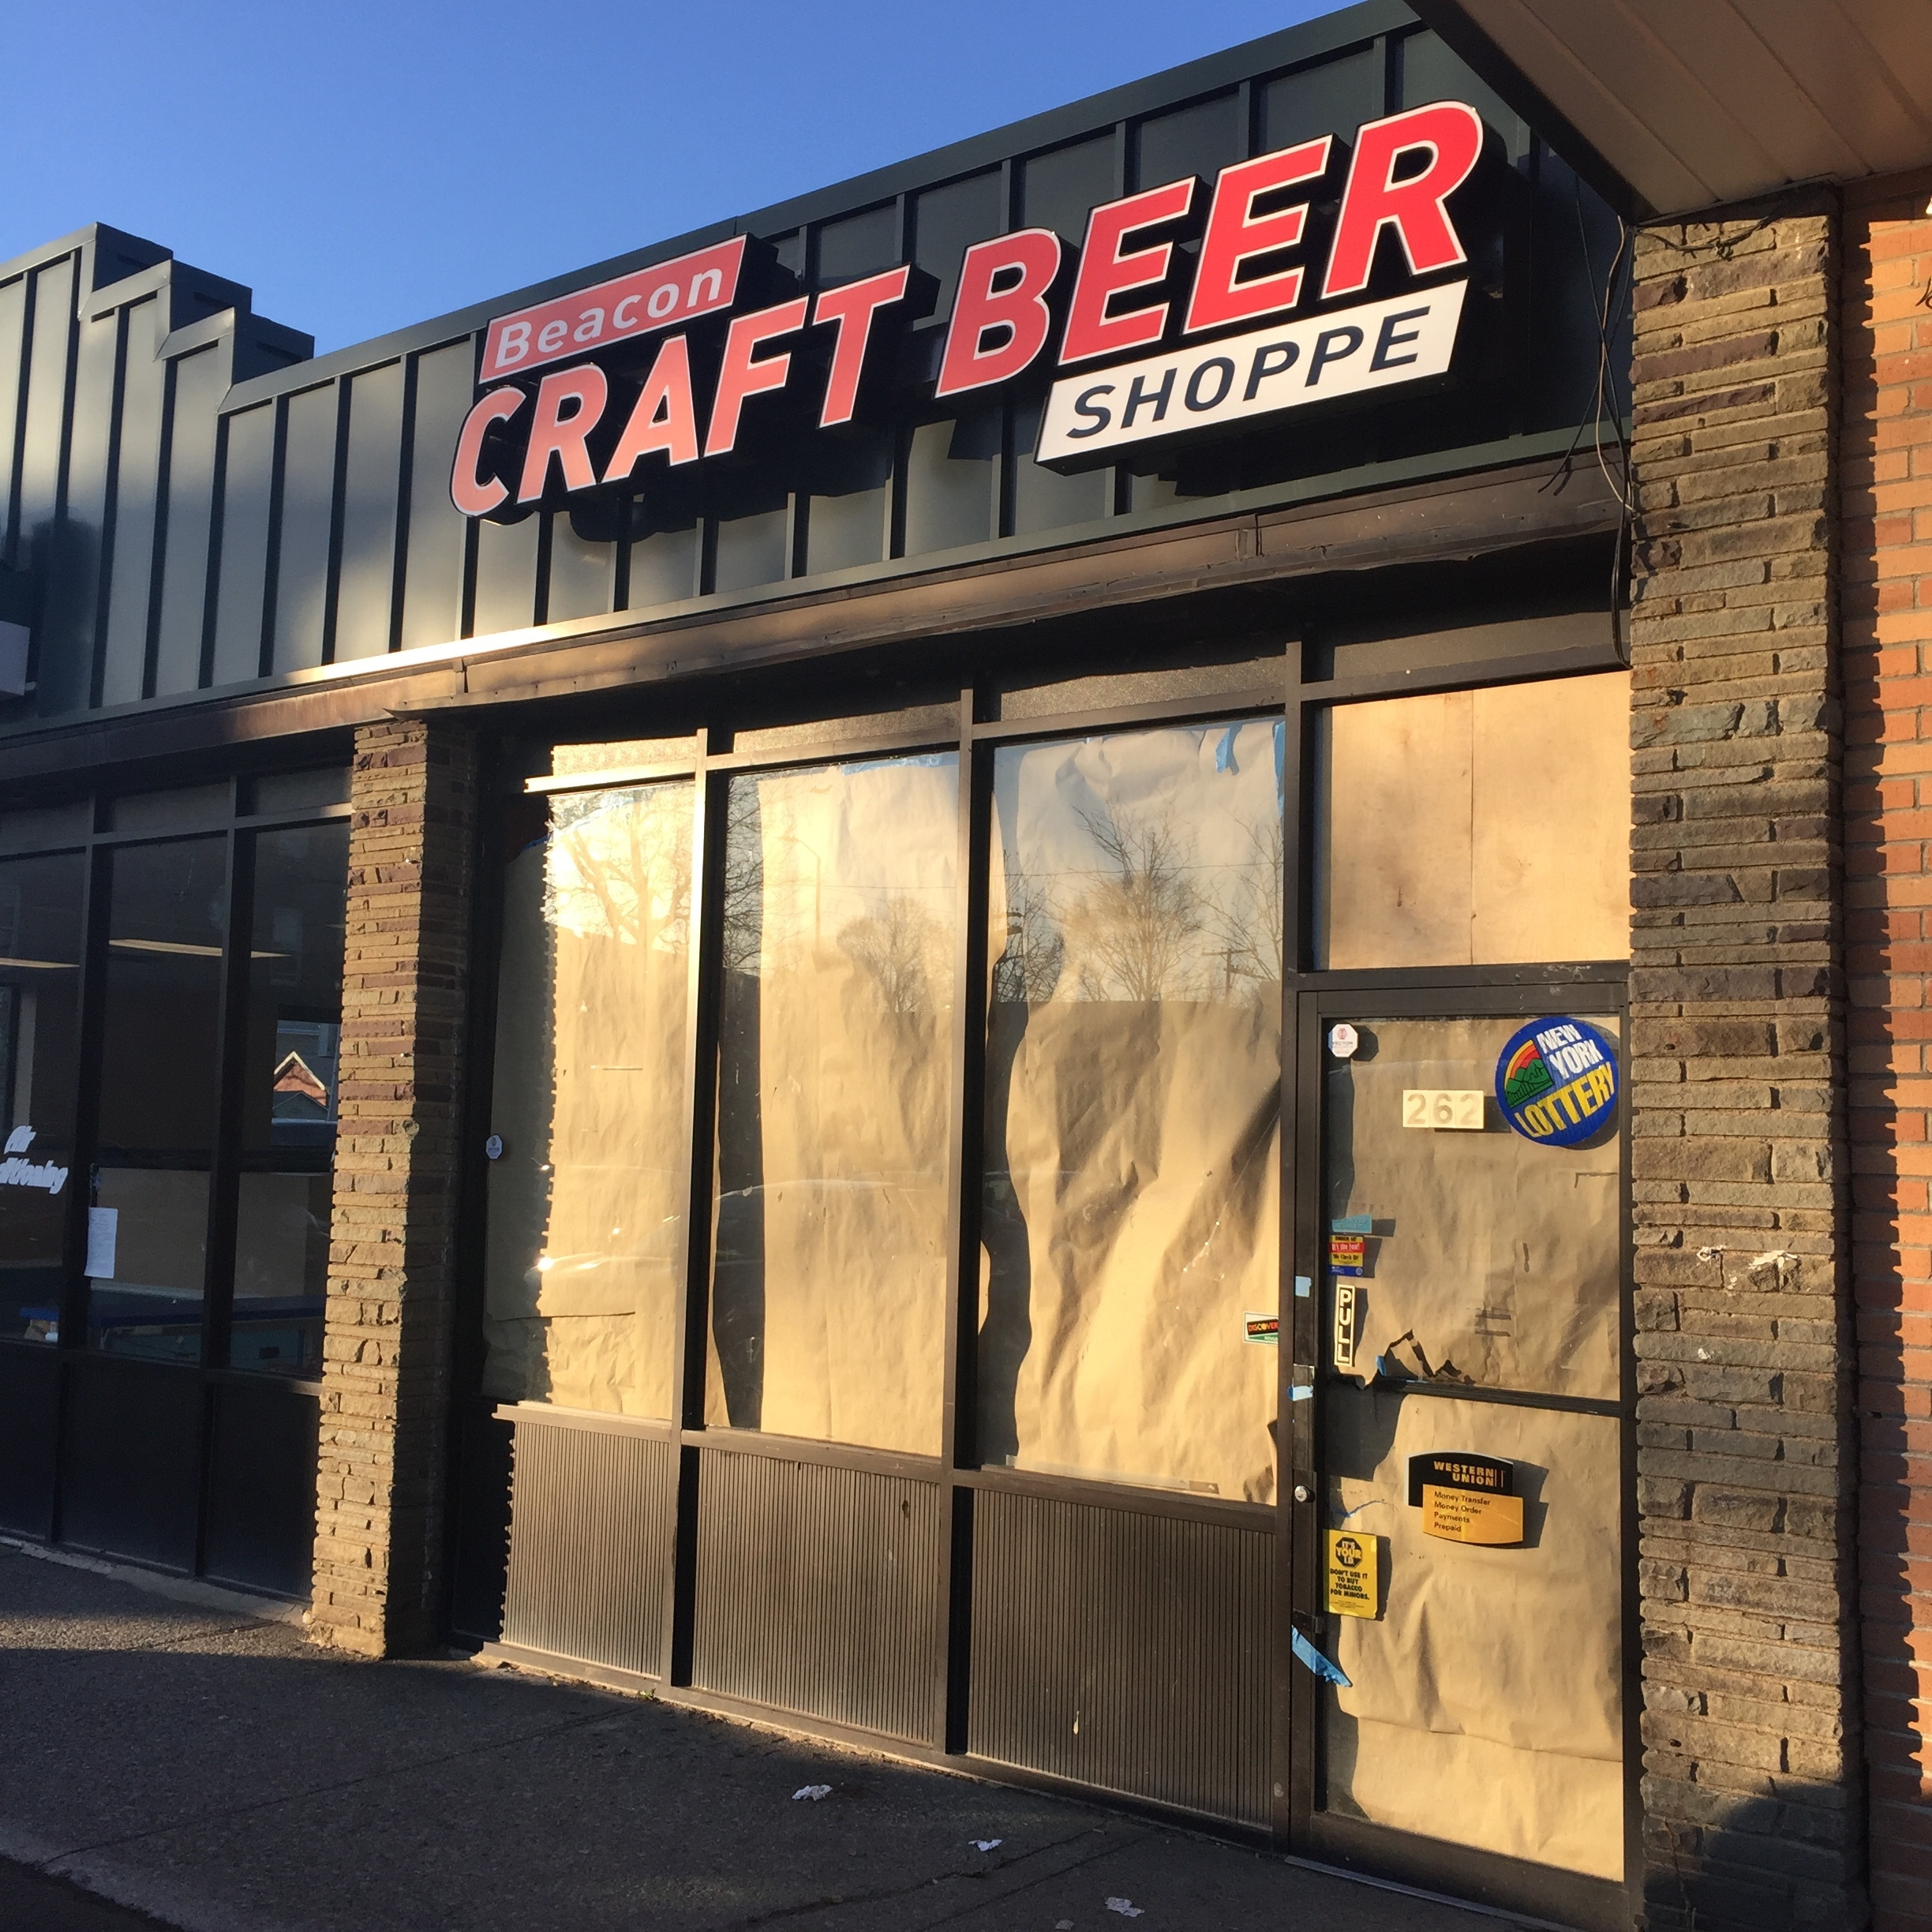 Regulars of the check-cashing store tried to enter the brown paper-covered door while the Craft Beer Shoppe was transforming.